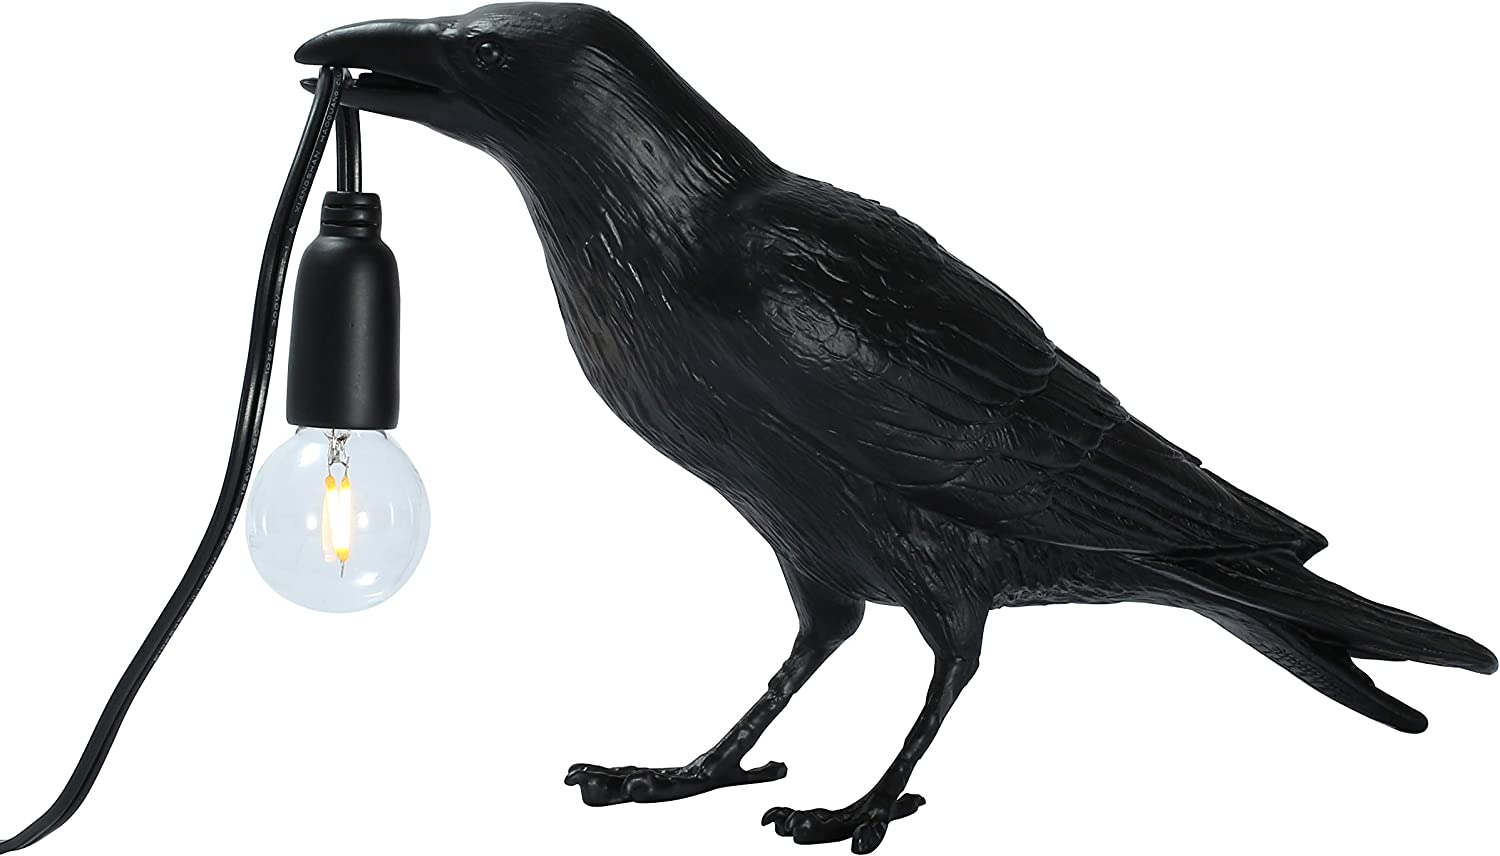 MAYOLA Birds Table Lamps Resin led Standing price Crow Lighting Desk Max 69% OFF